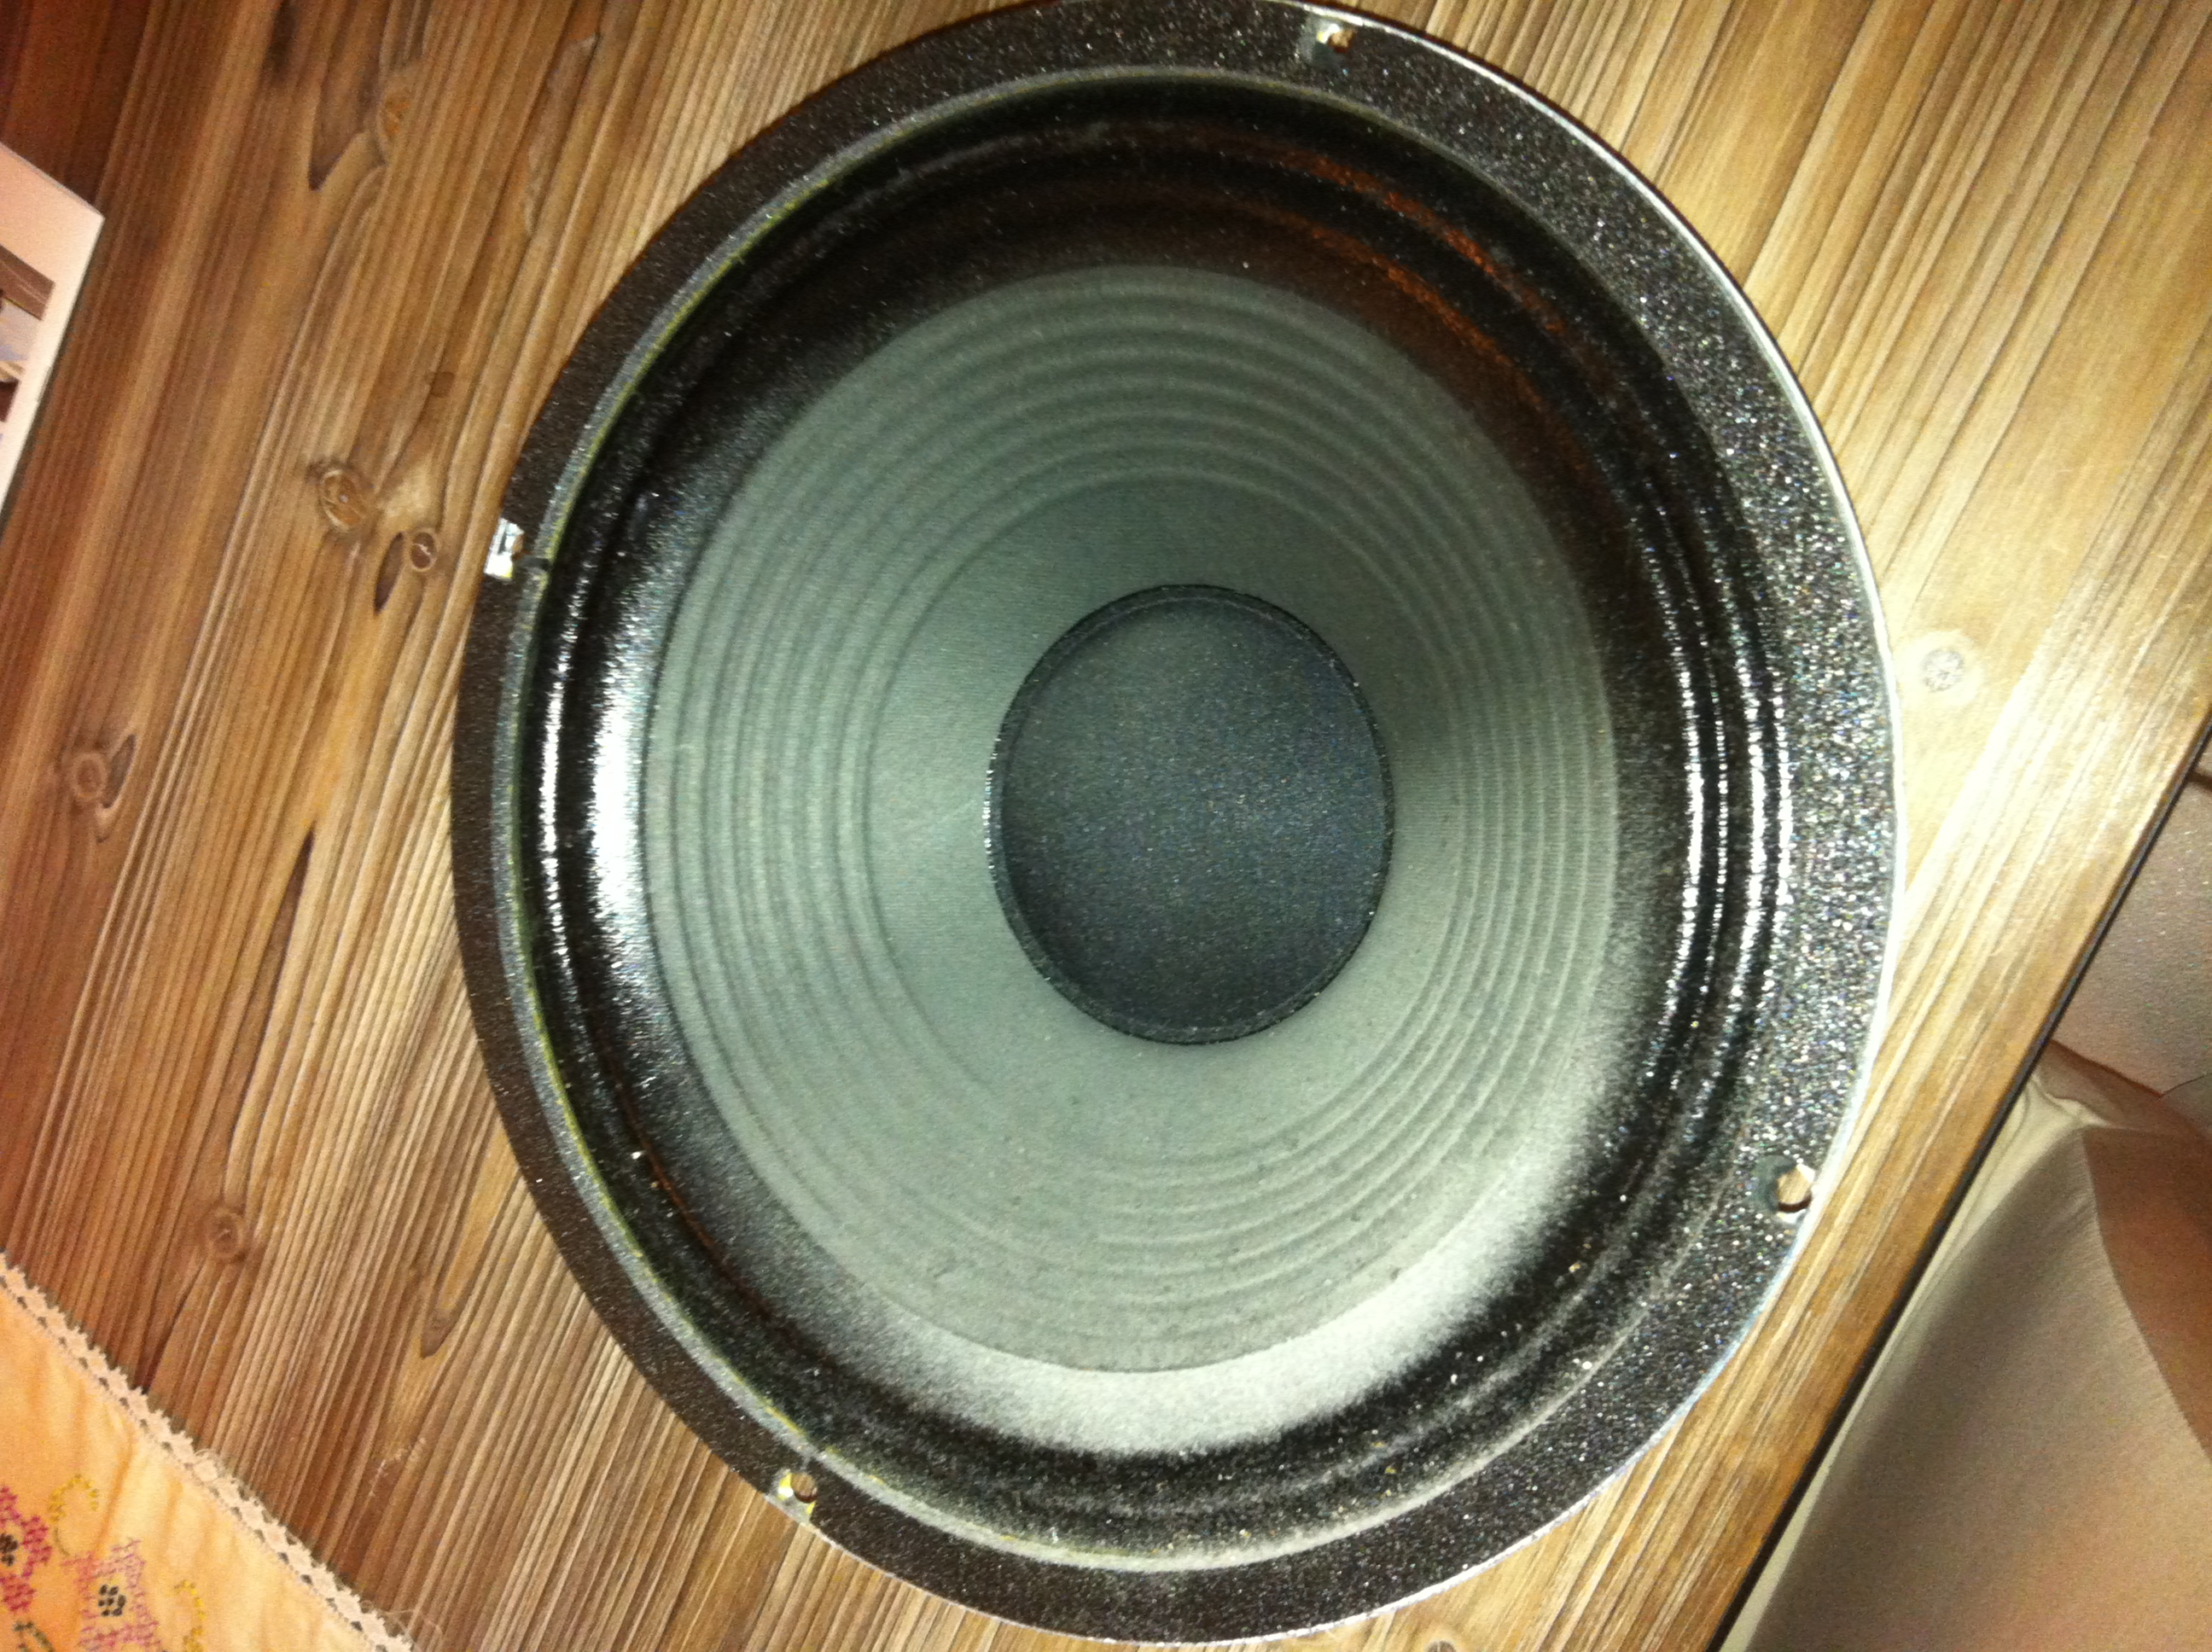 celestion g12t 75 weight loss